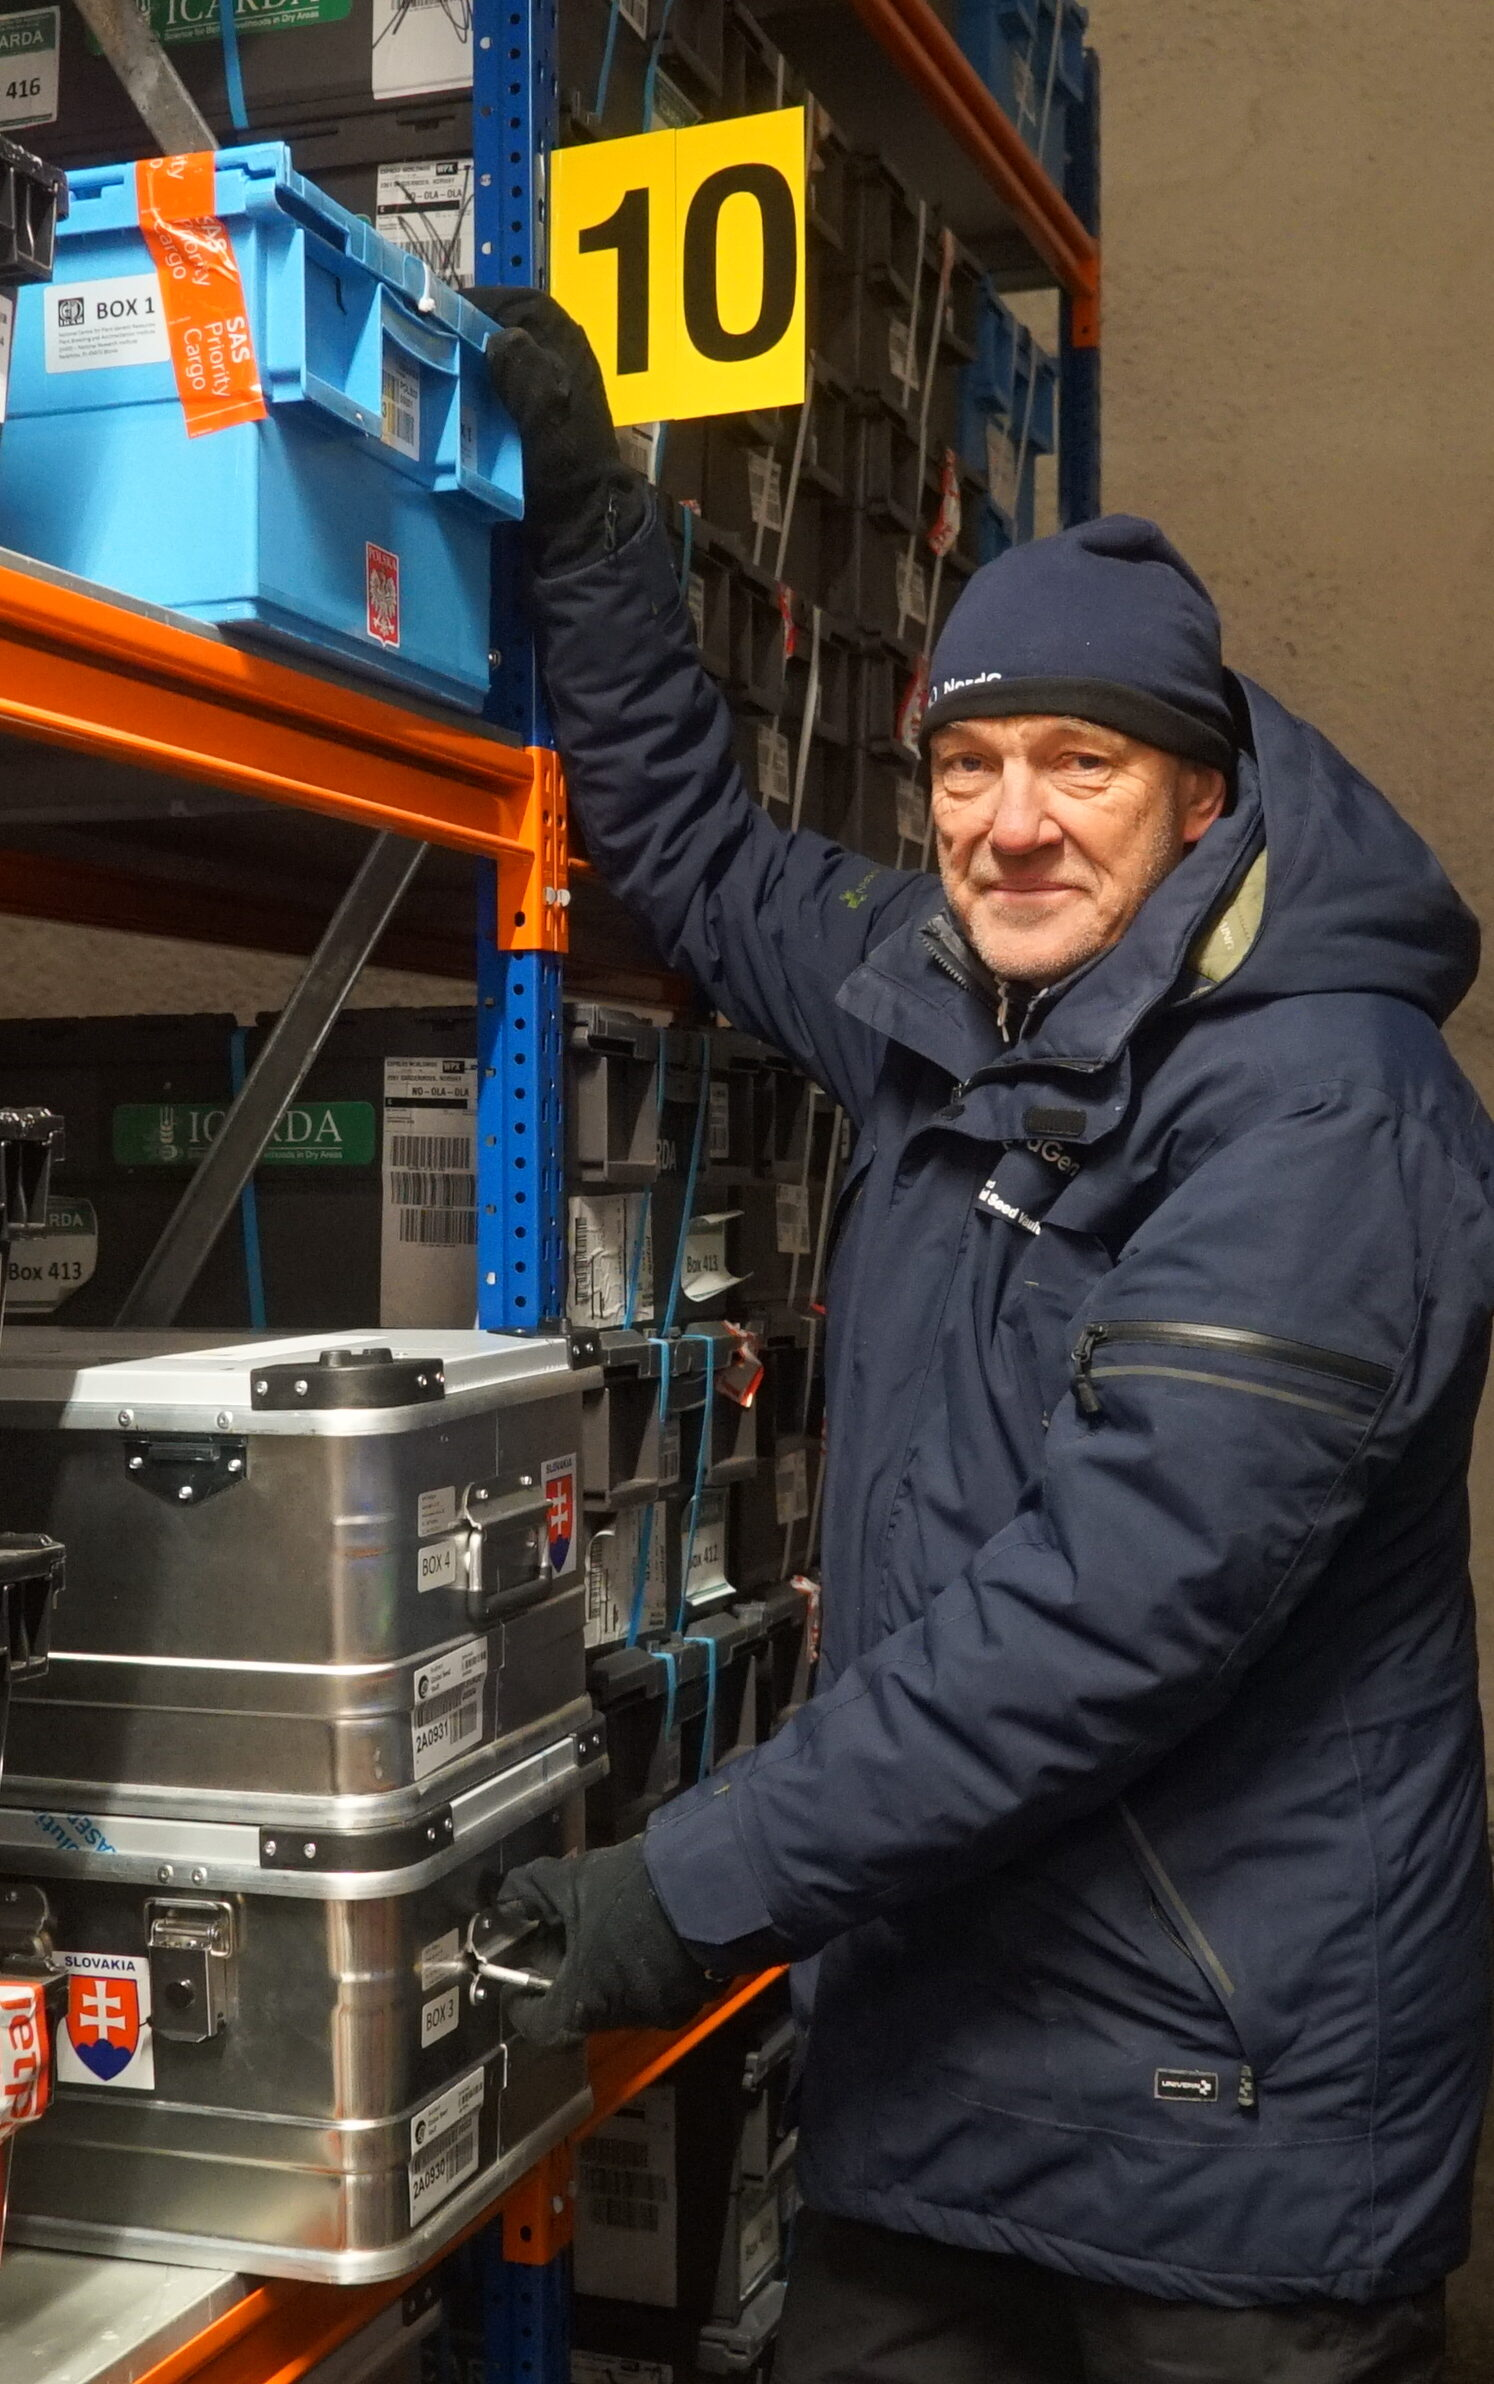 Åsmund Asdal, Seed Vault Coordinator at NordGen after putting the boxes from Poland and Slovakia at the shelves inside the Seed Vault.